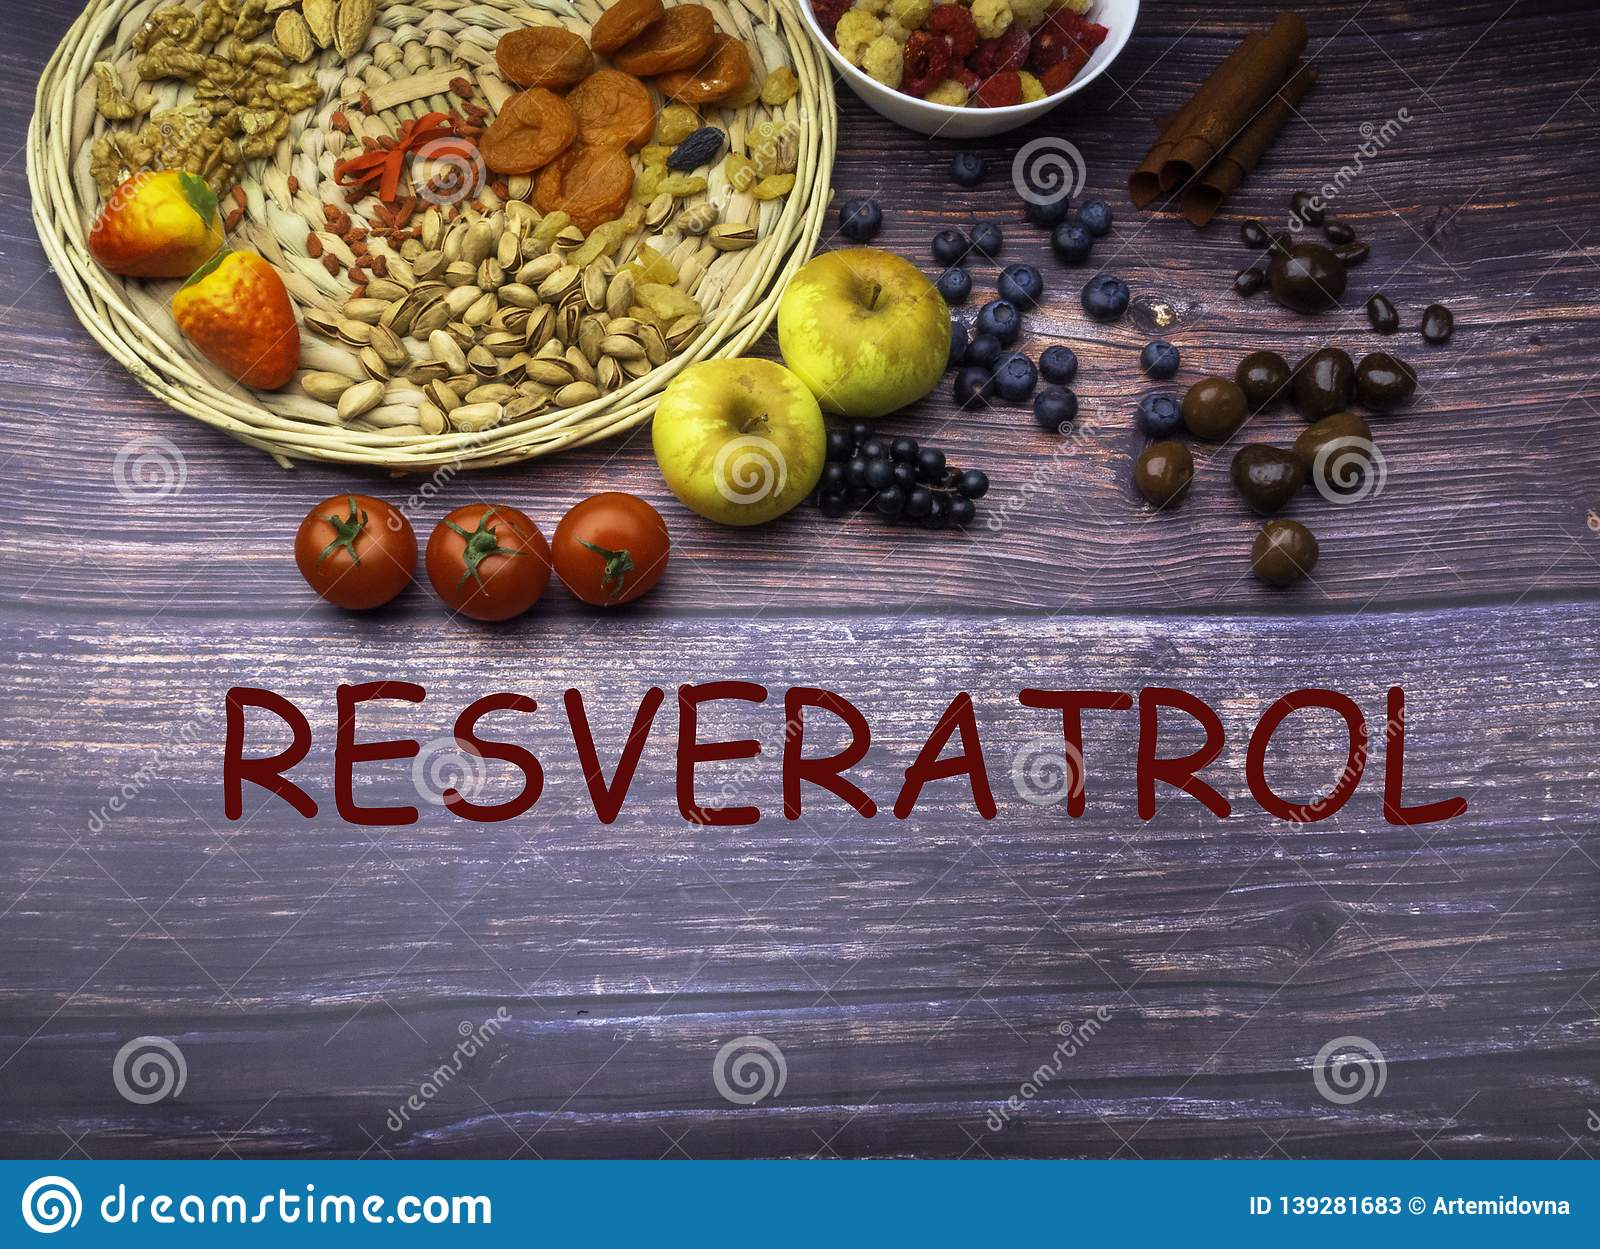 Resveratrol Rich Food On Wooden Surface With Text Antioxidants